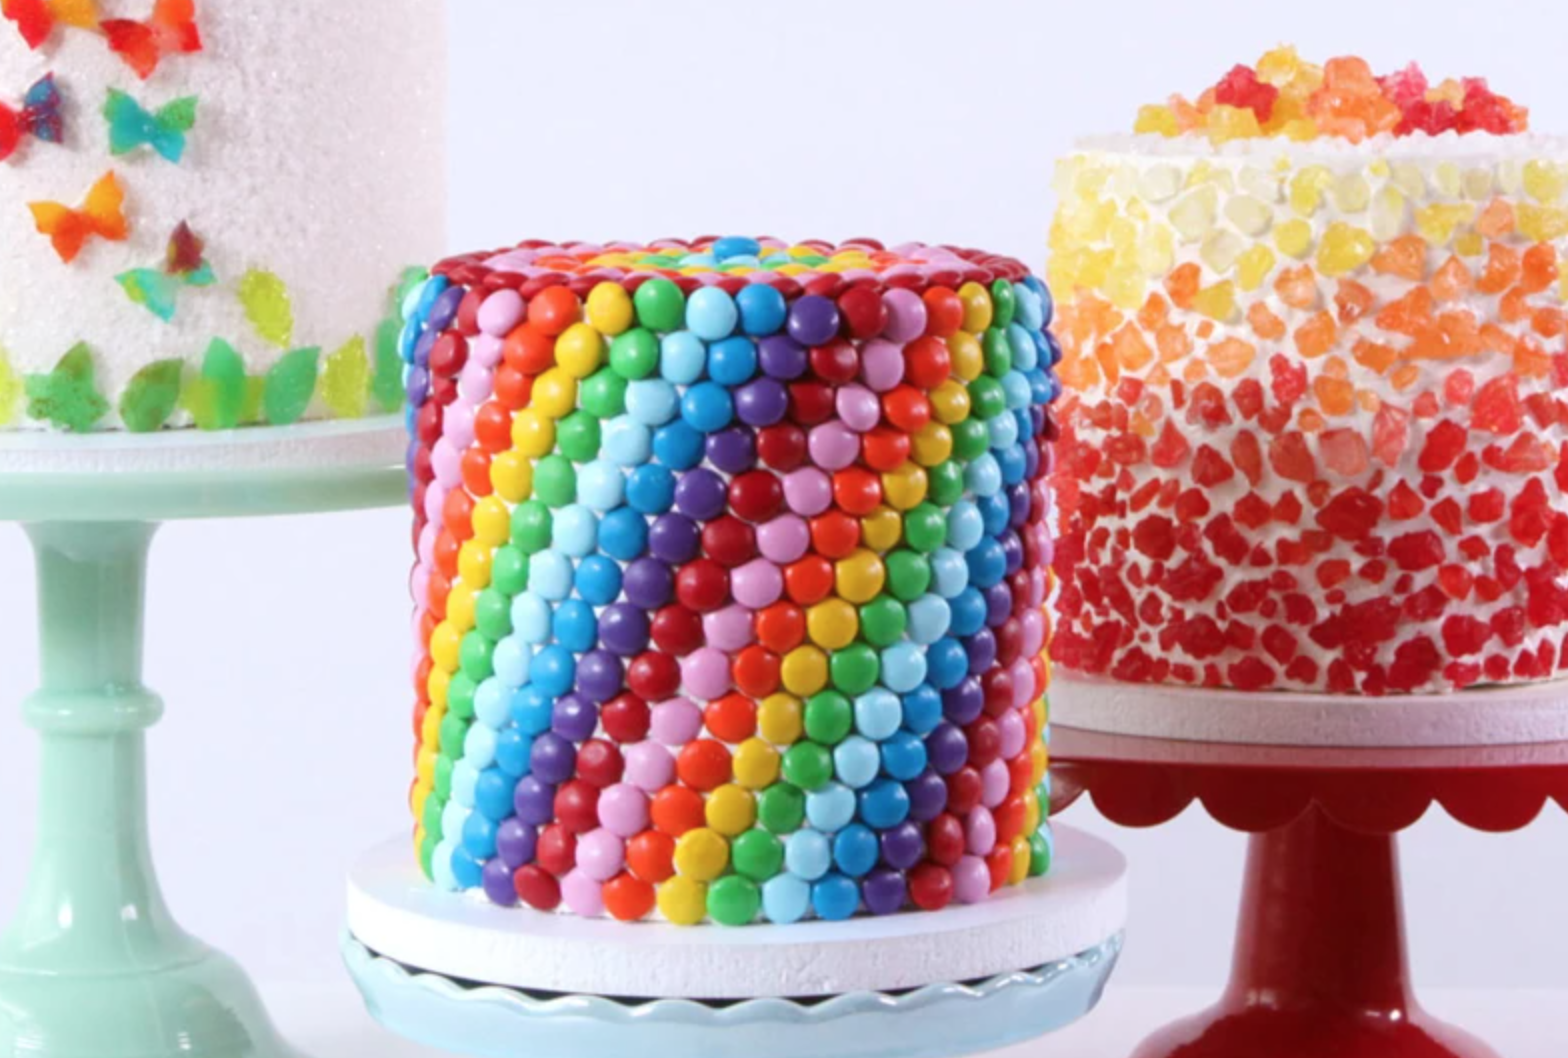 cakes covered in colorful candy